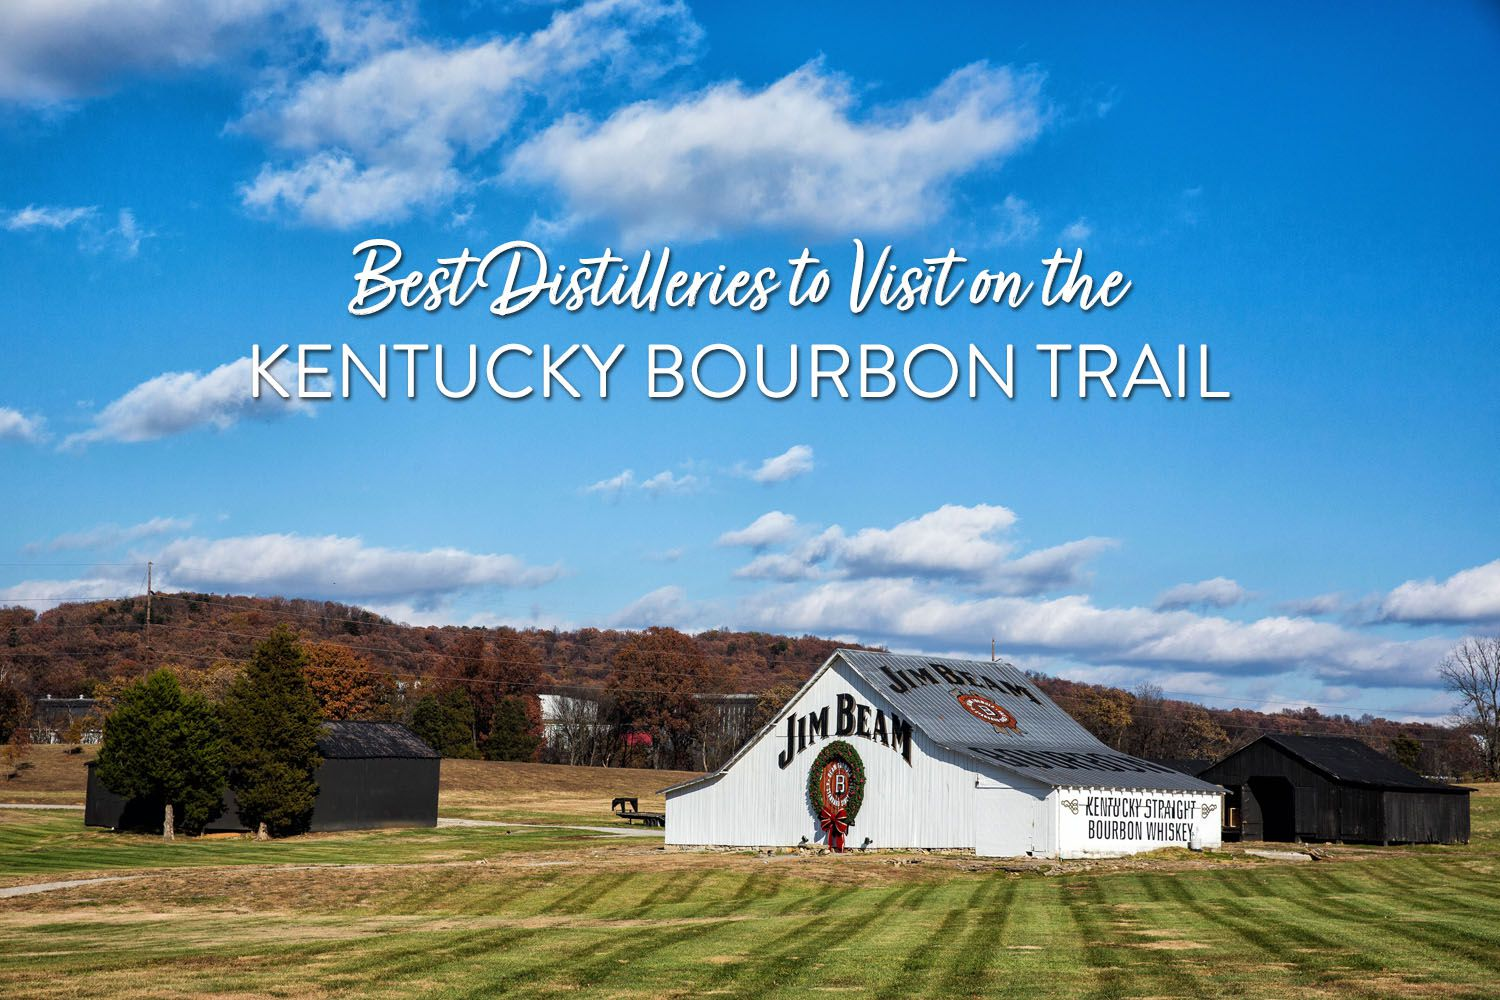 Best Distilleries Kentucky Bourbon Trail